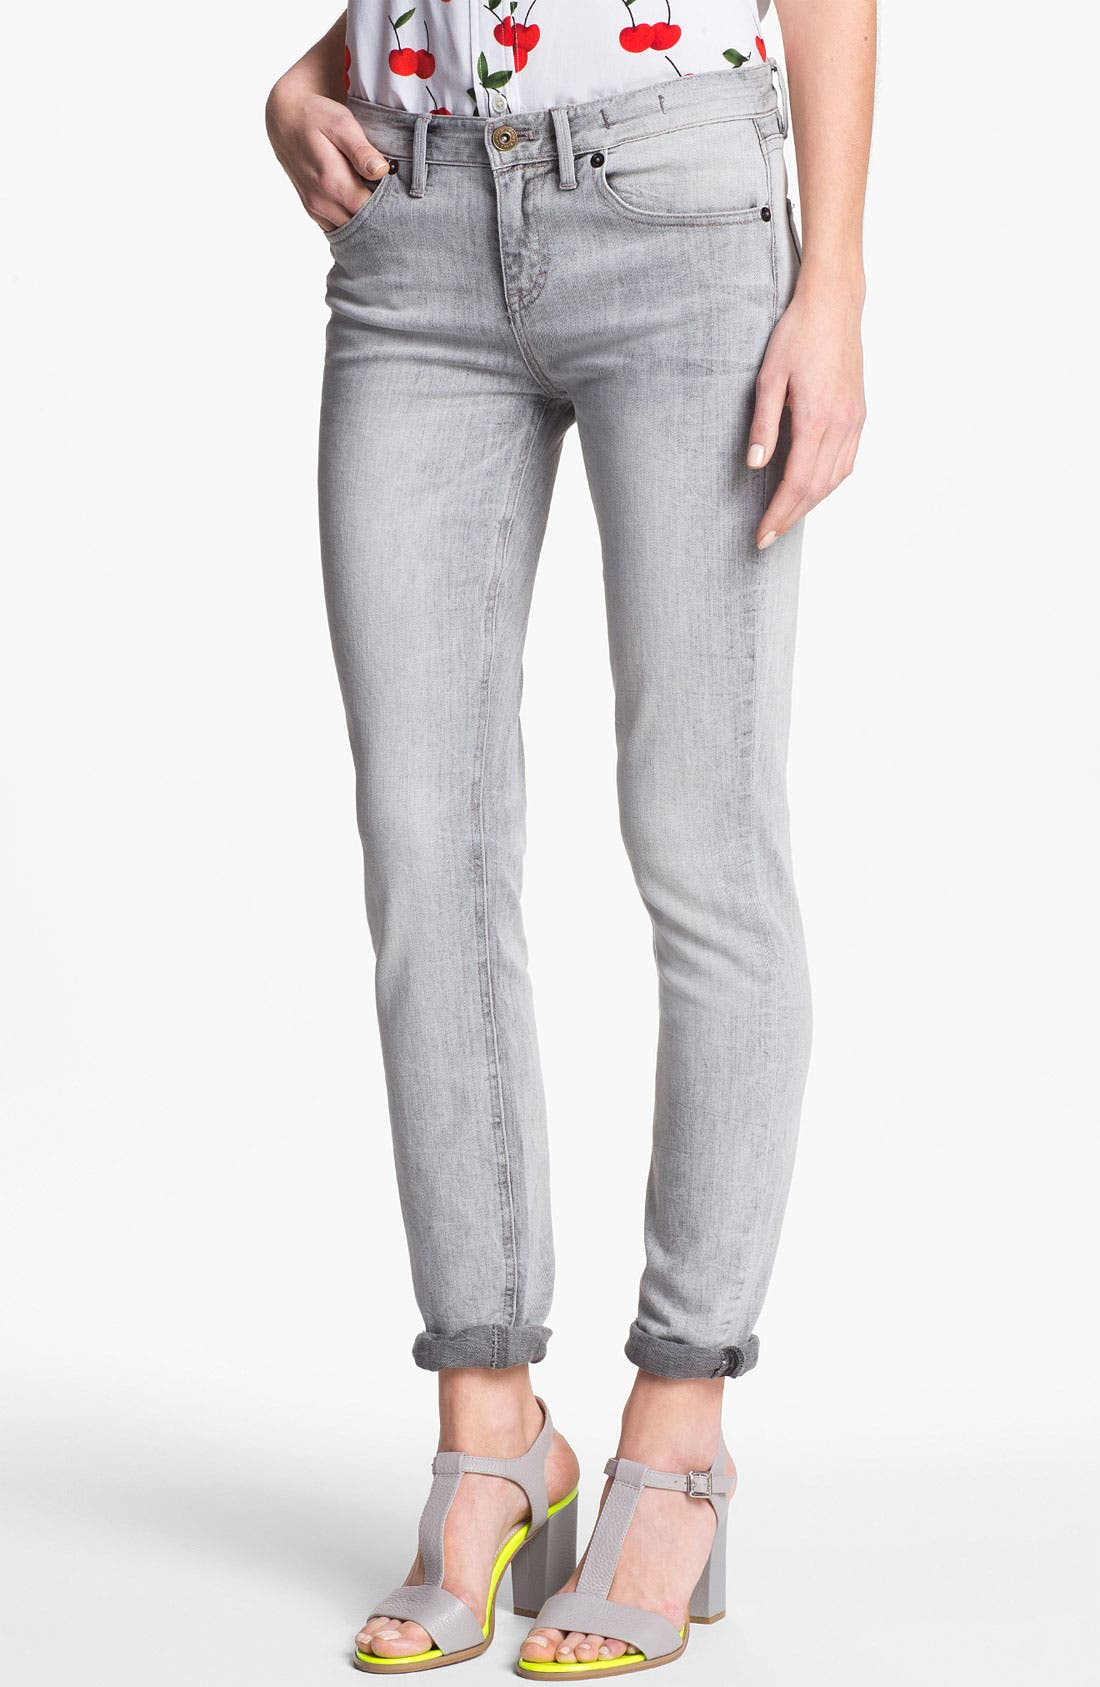 Main Image - Two by Vince Camuto 'Shorty' Jeans (Sandy Grey)